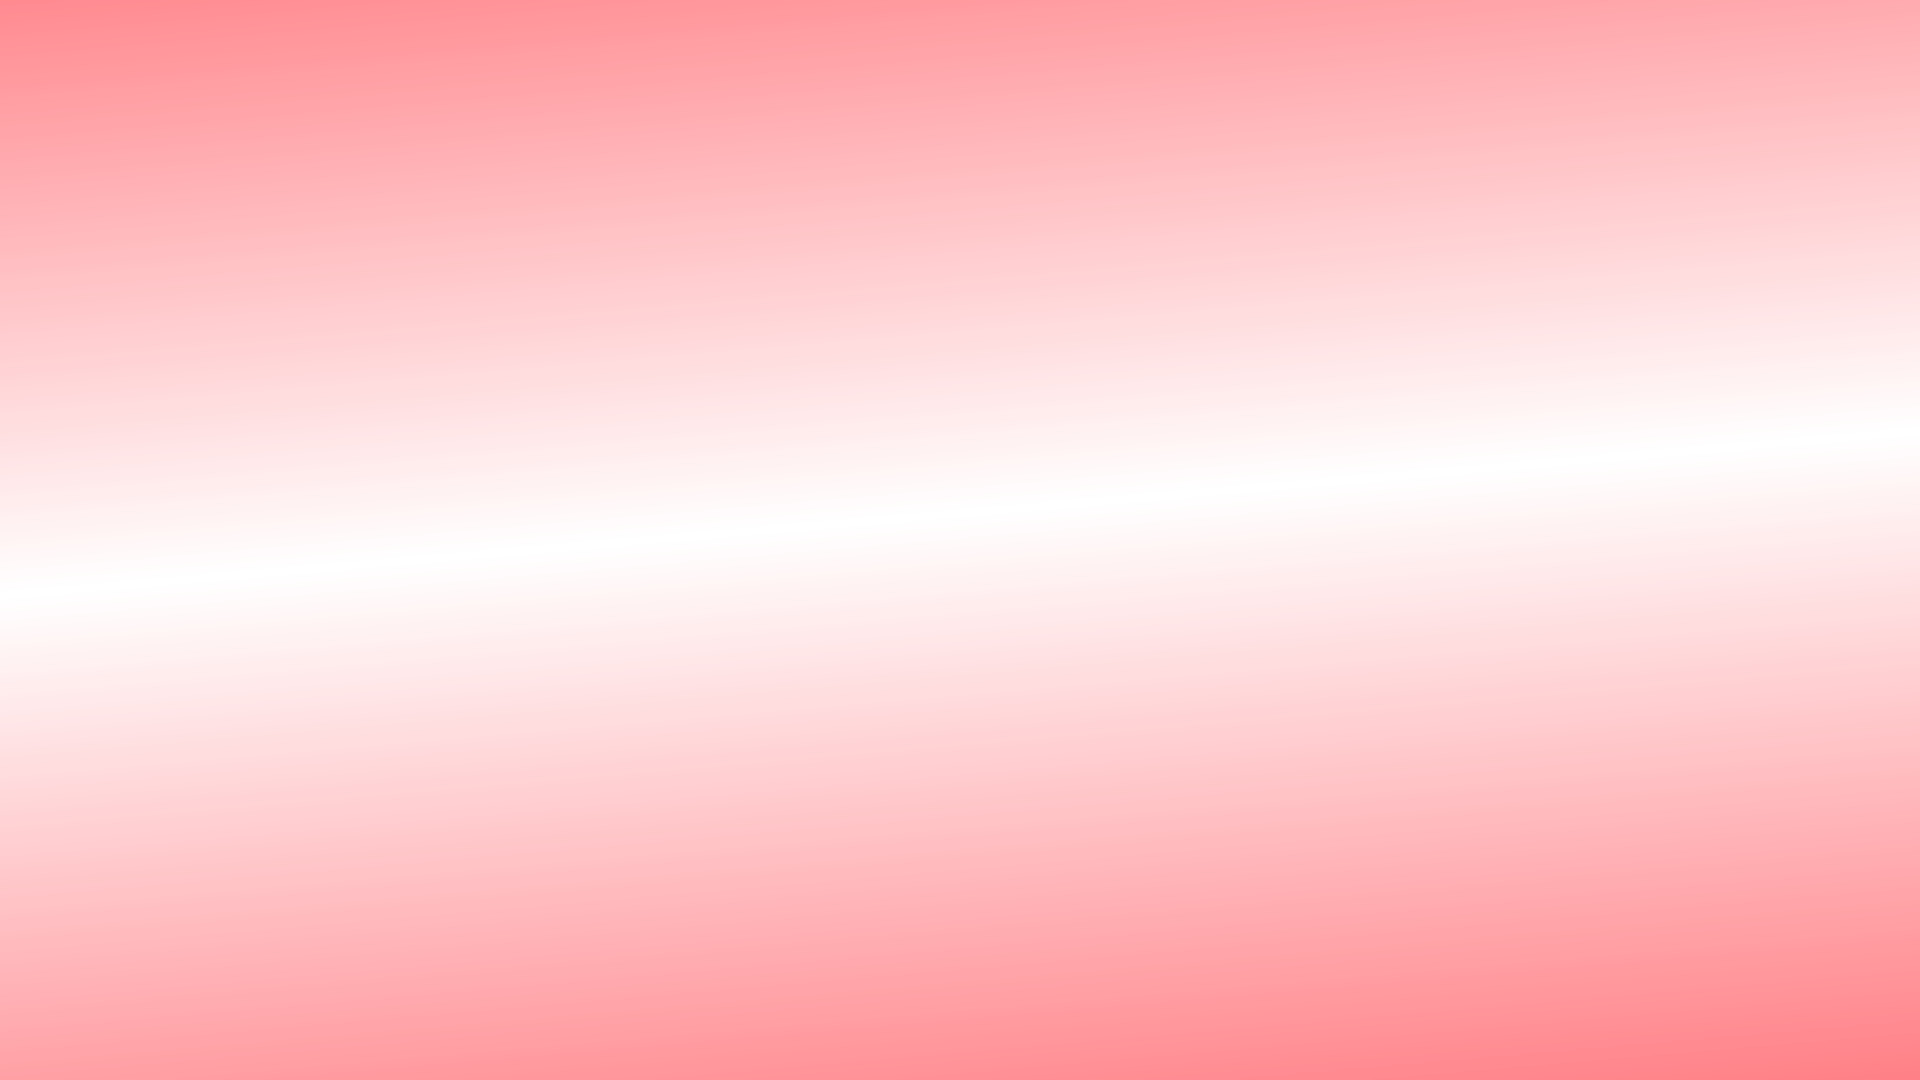 1920x1080 wallpaper, desktop, pink, champagne, gradient, white, techie .